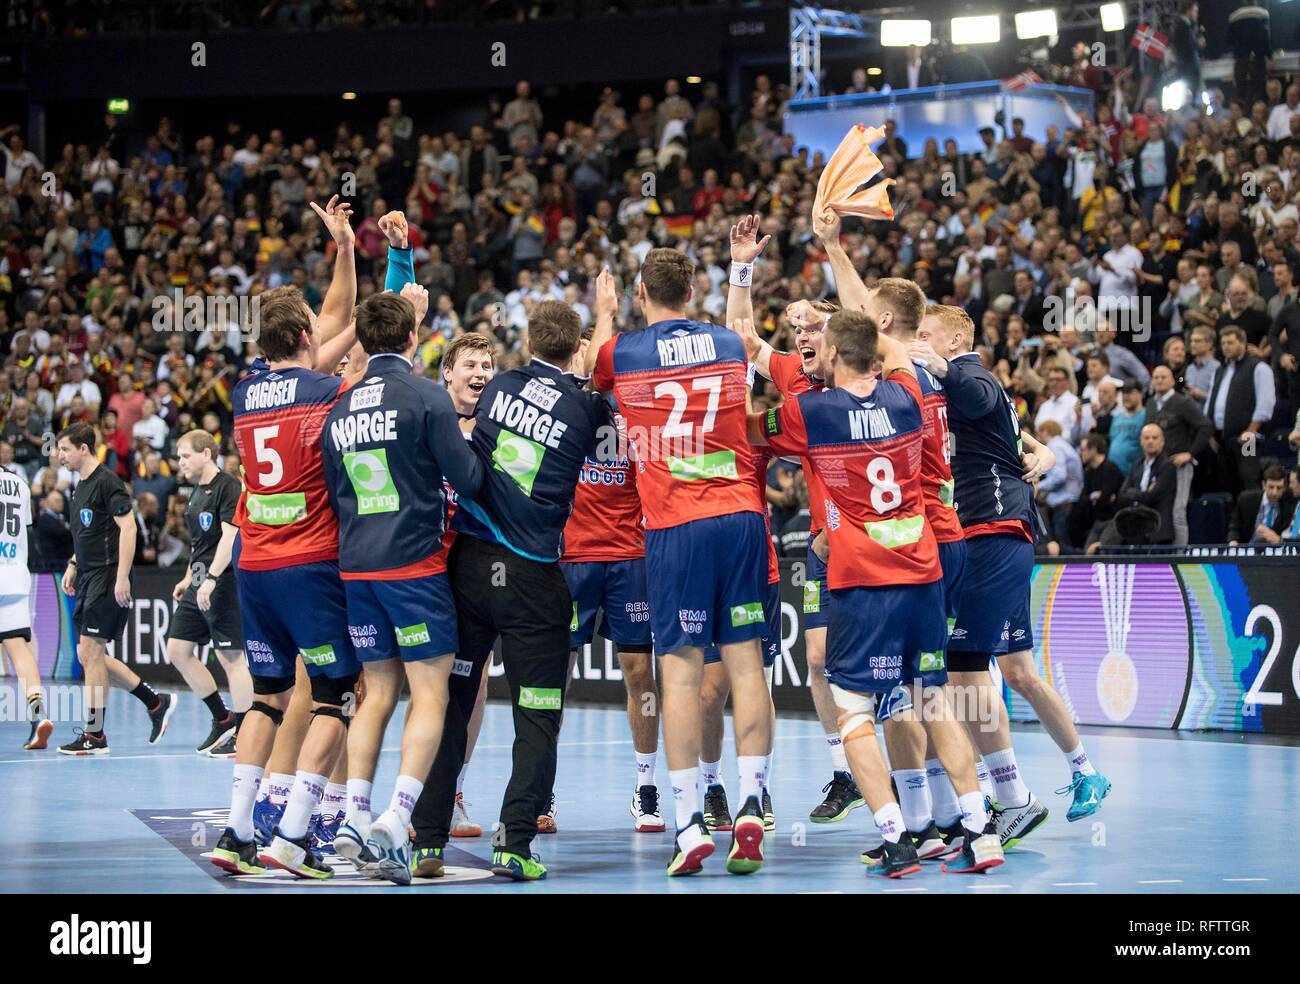 Hamburg, Deutschland. 25th Jan, 2019. final jubilation Team NOR, team squad, team, semi-final Germany (GER) - Norway (NOR) 25-31, on 25.01.2019 in Hamburg/Germany. Handball World Cup 2019, from 10.01. - 27.01.2019 in Germany/Denmark. | usage worldwide Credit: dpa/Alamy Live News Stock Photo